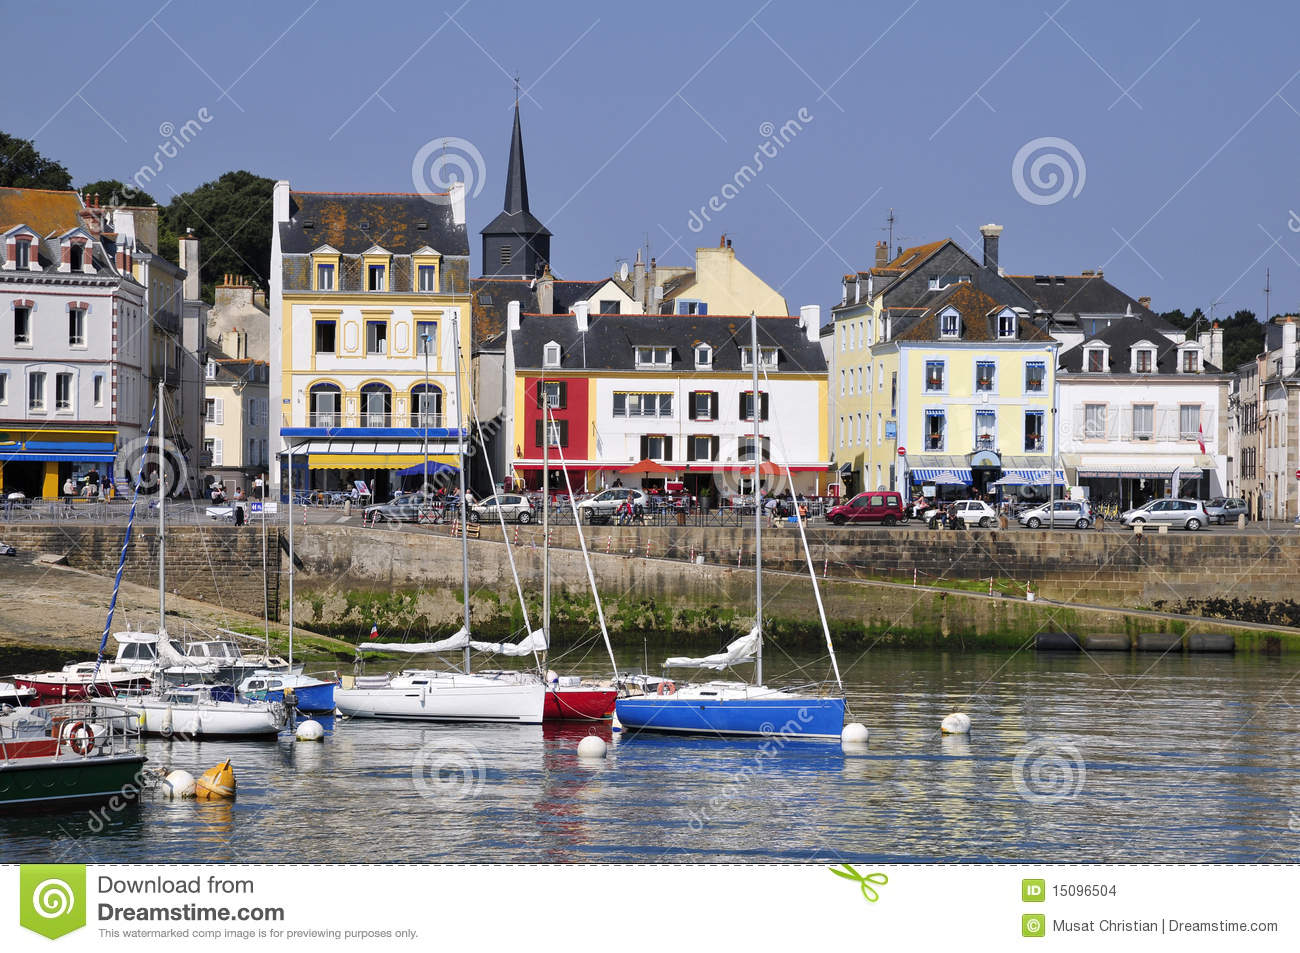 Port de le palais la belle ile en france photo stock - Belle piscine ile de france ...